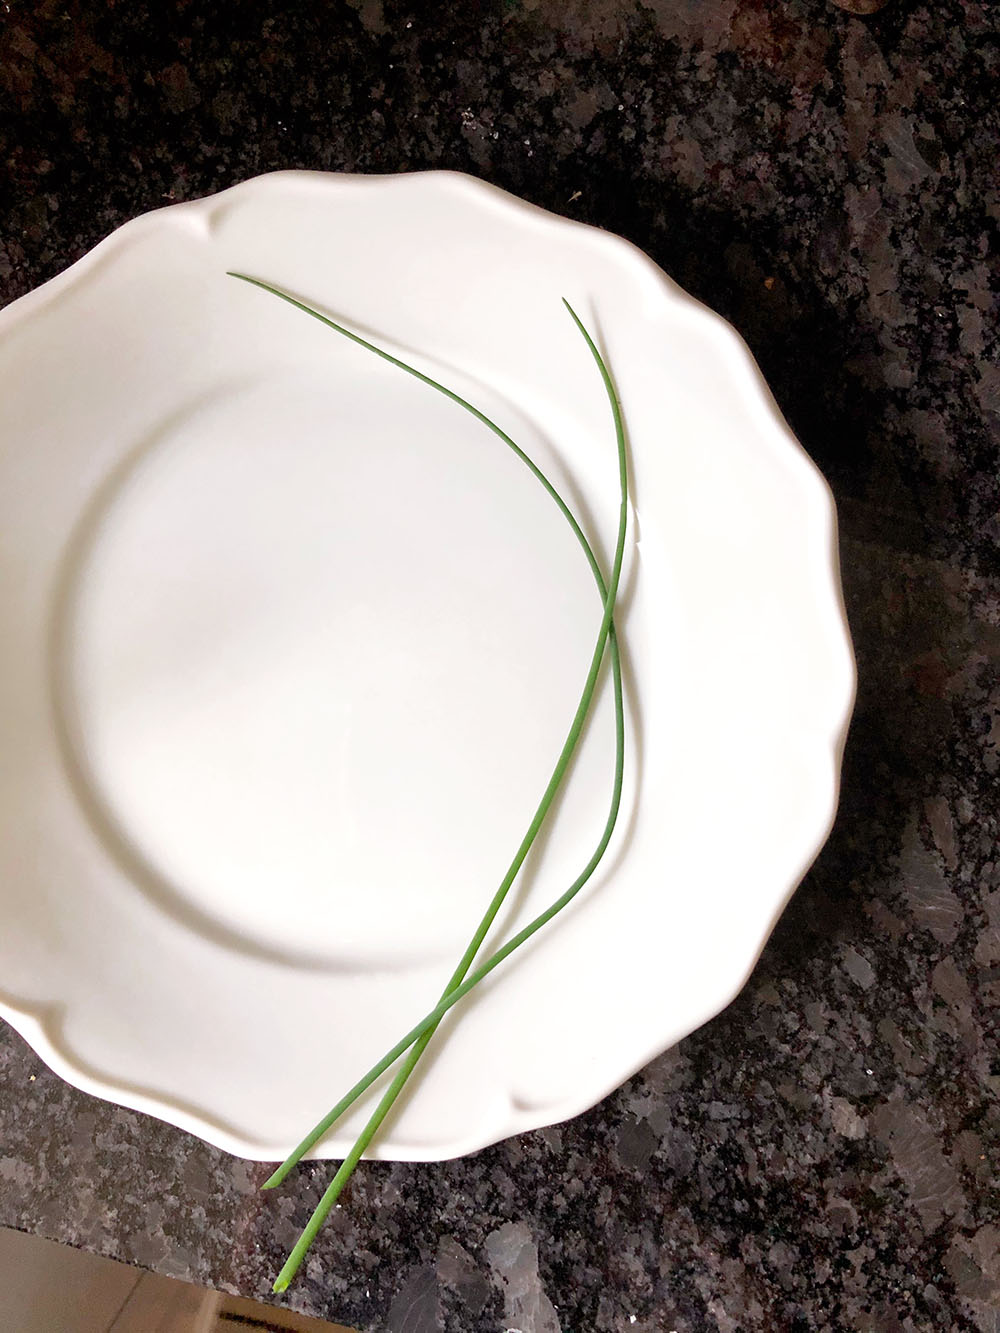 two chives on a plate